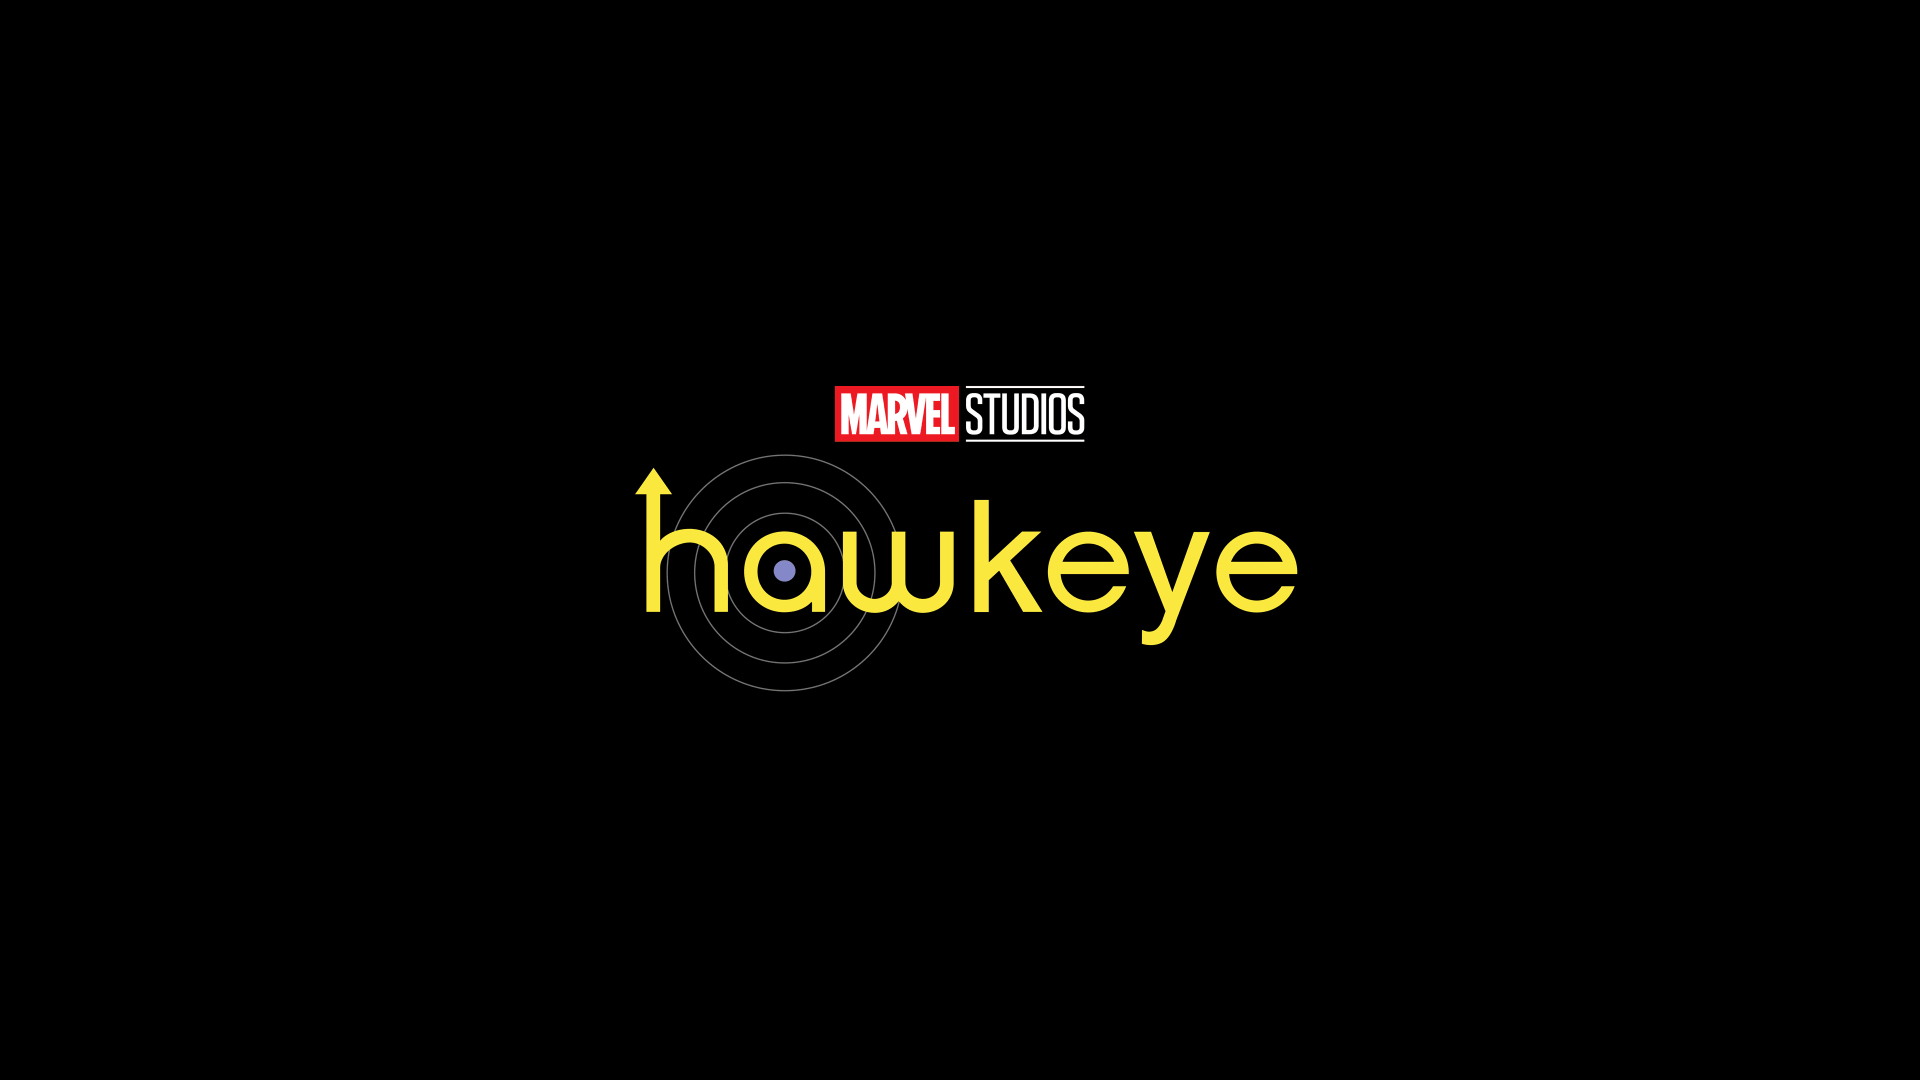 1920x1080 Disney Plus Hawkeye Comic Con Poster 1080p Laptop